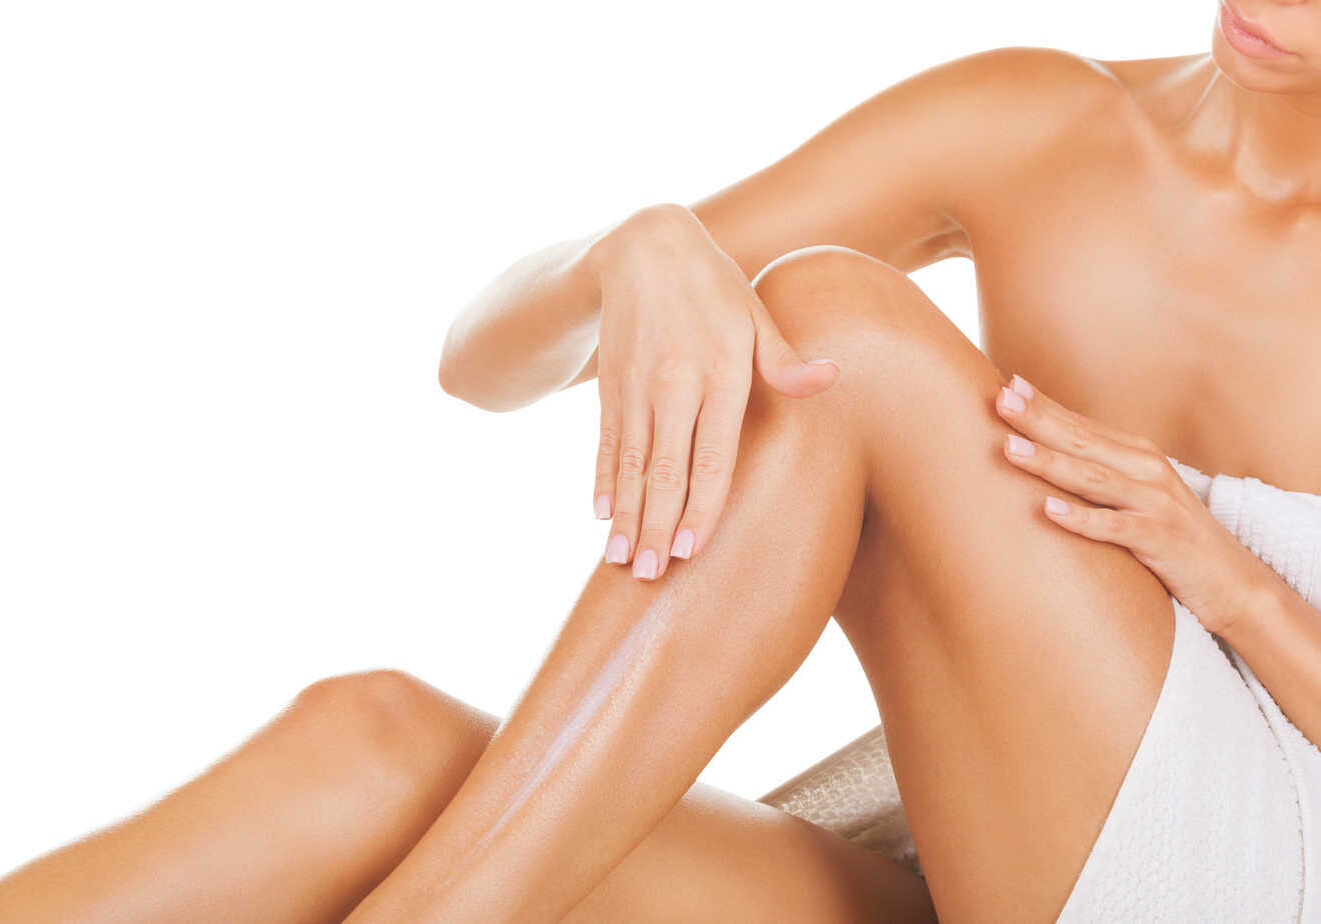 LaVida Massage of Smithtown, Skincare, Skin Care, Advanced Skincare, IPL Hair Removal, Hair Removal, Waxing